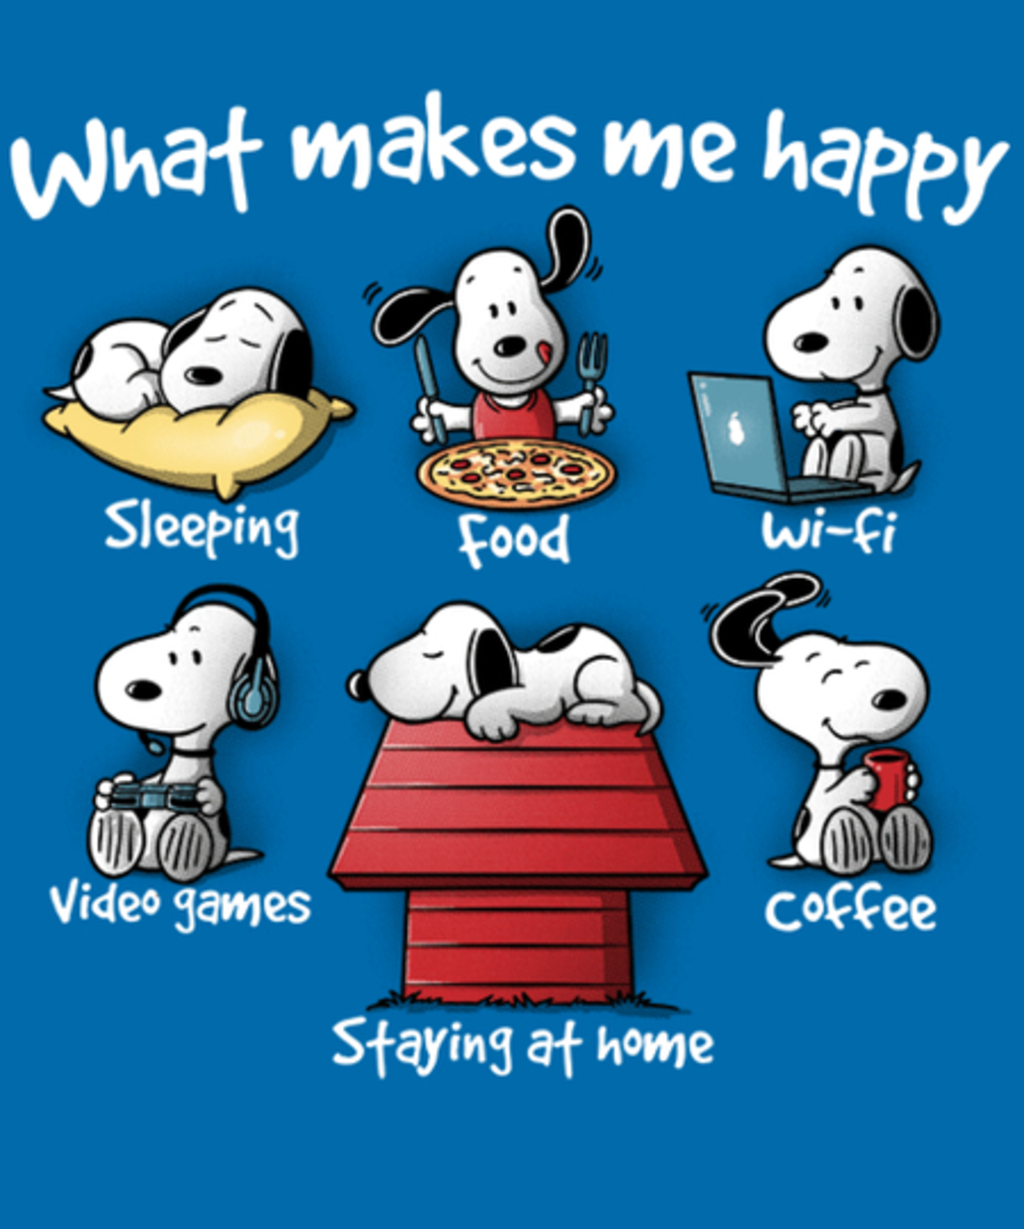 Qwertee: What makes me happy